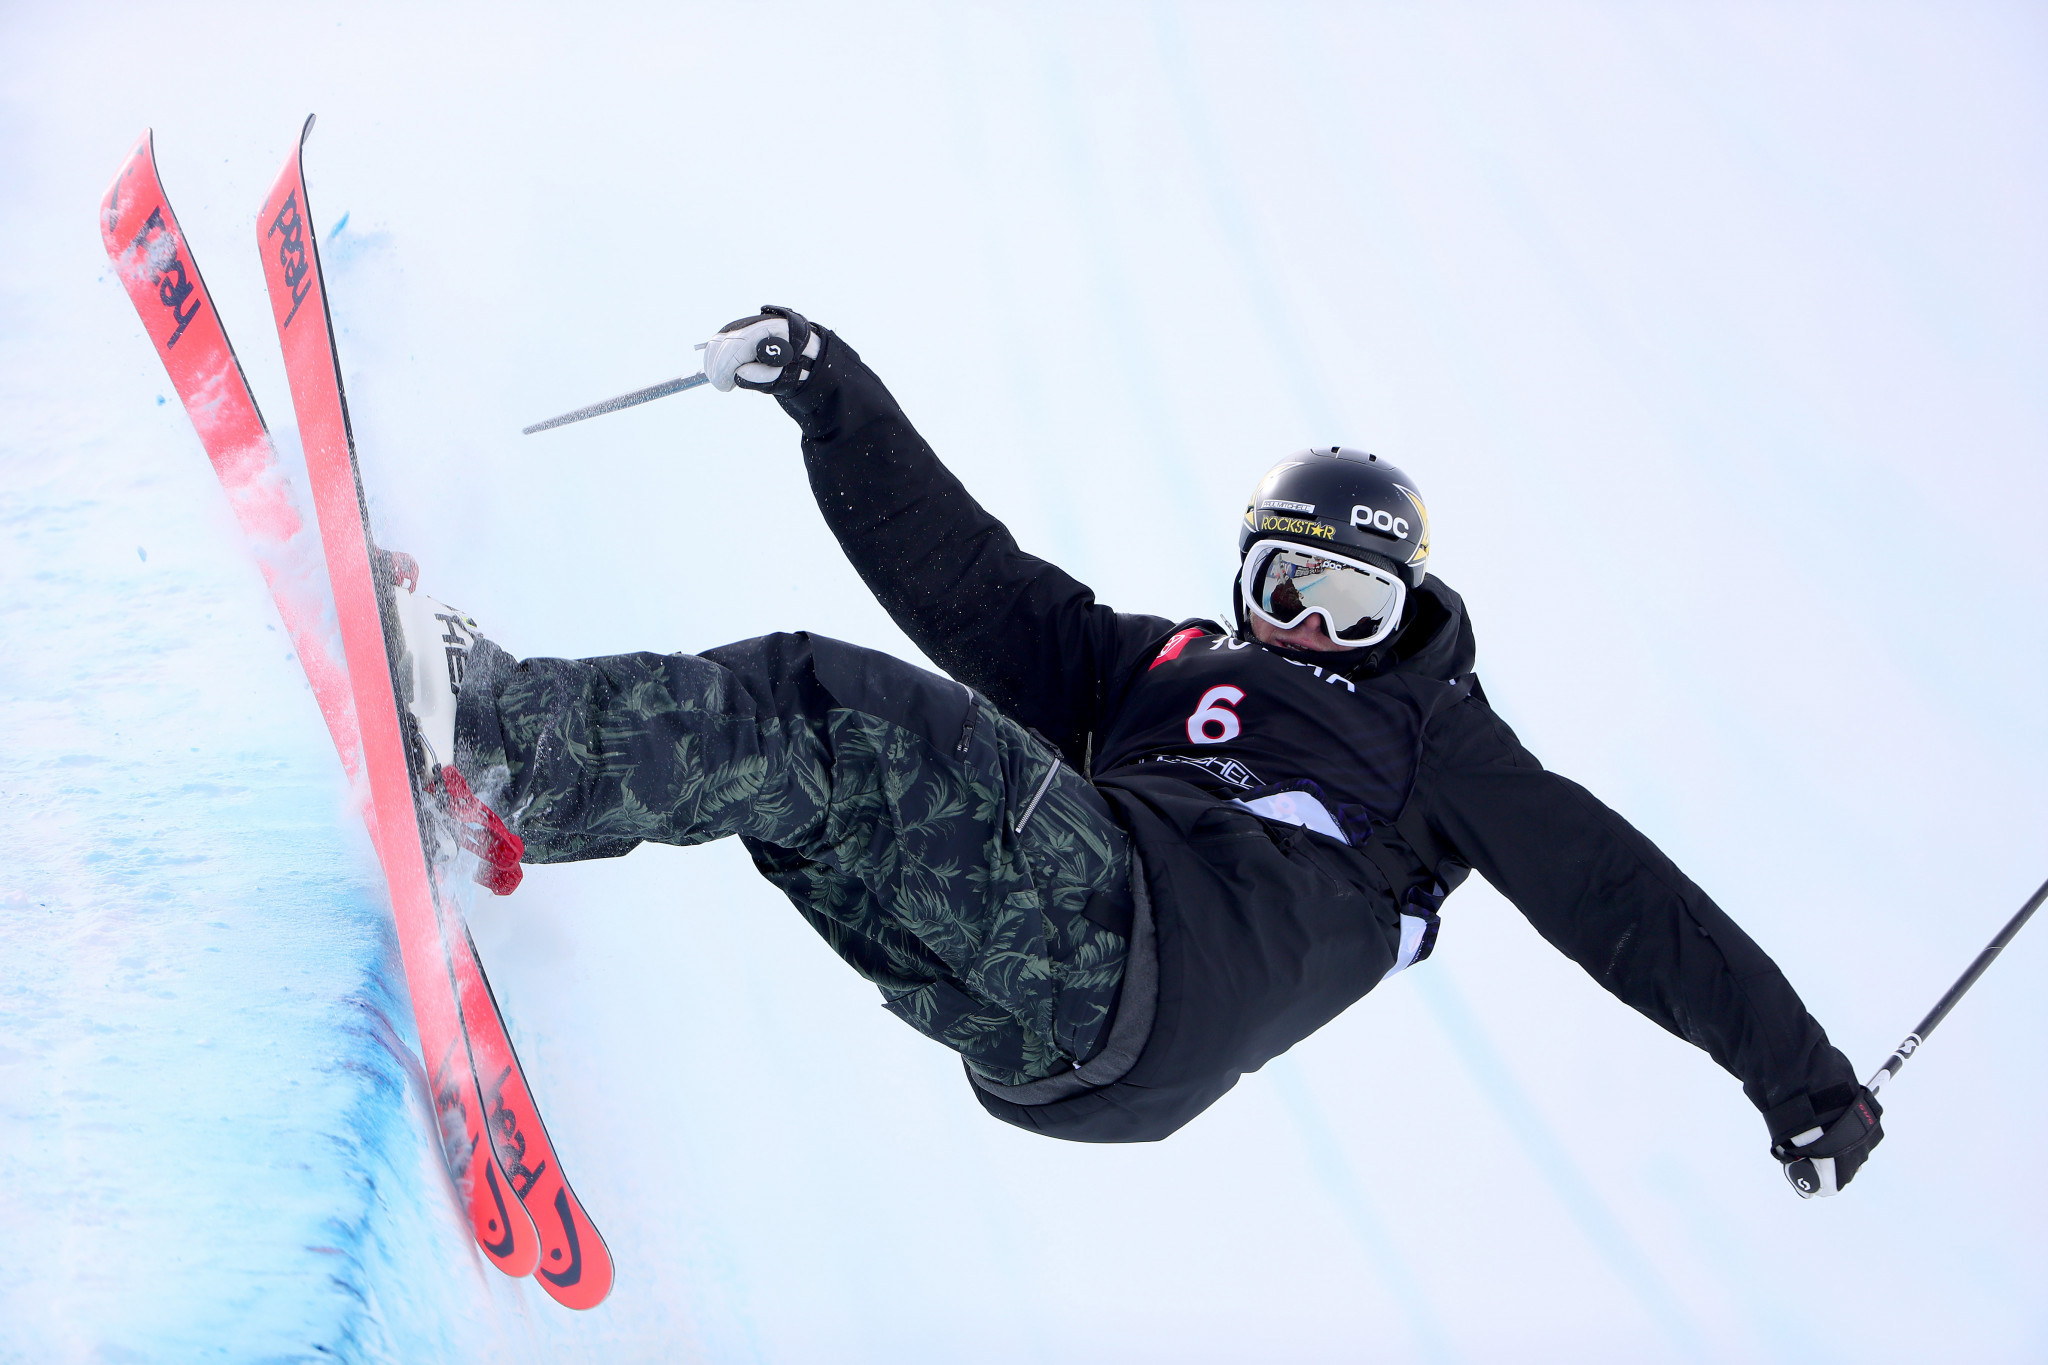 Gu to feature on opening day of Aspen FIS Snowboard and Freeski World Championships